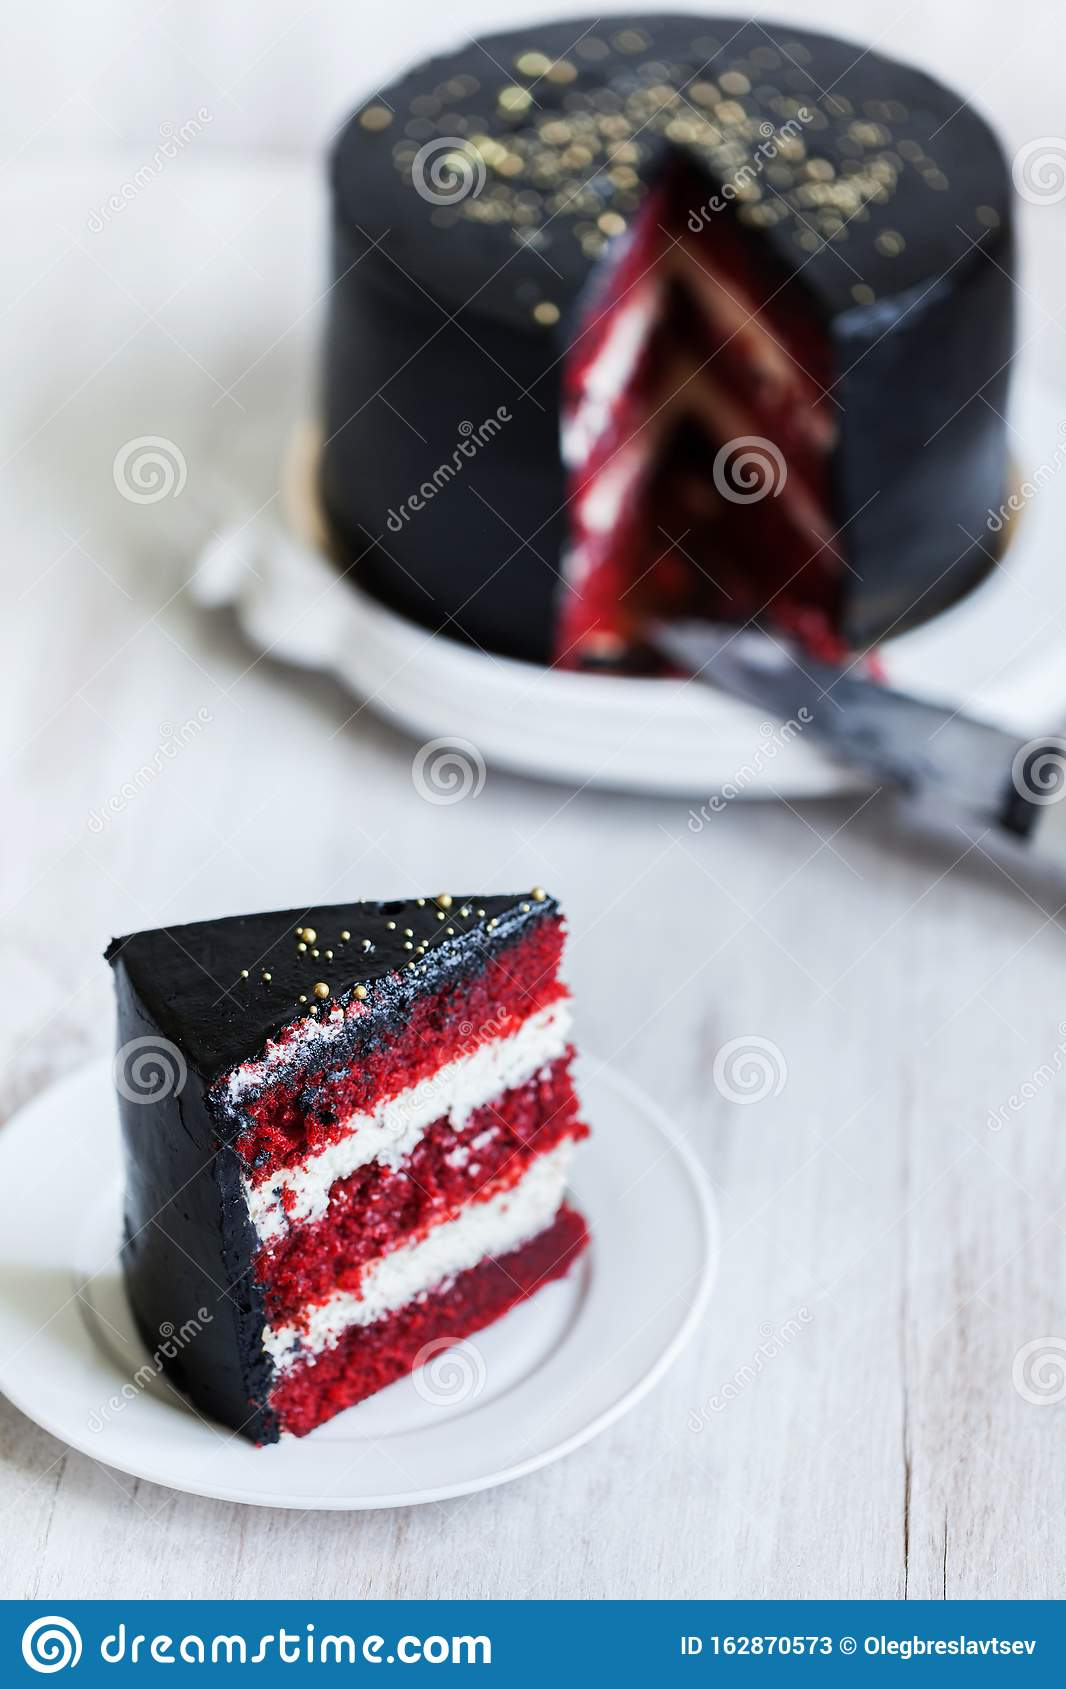 Astounding Round Black Cake With Striped Red And White Filling Stock Image Funny Birthday Cards Online Amentibdeldamsfinfo